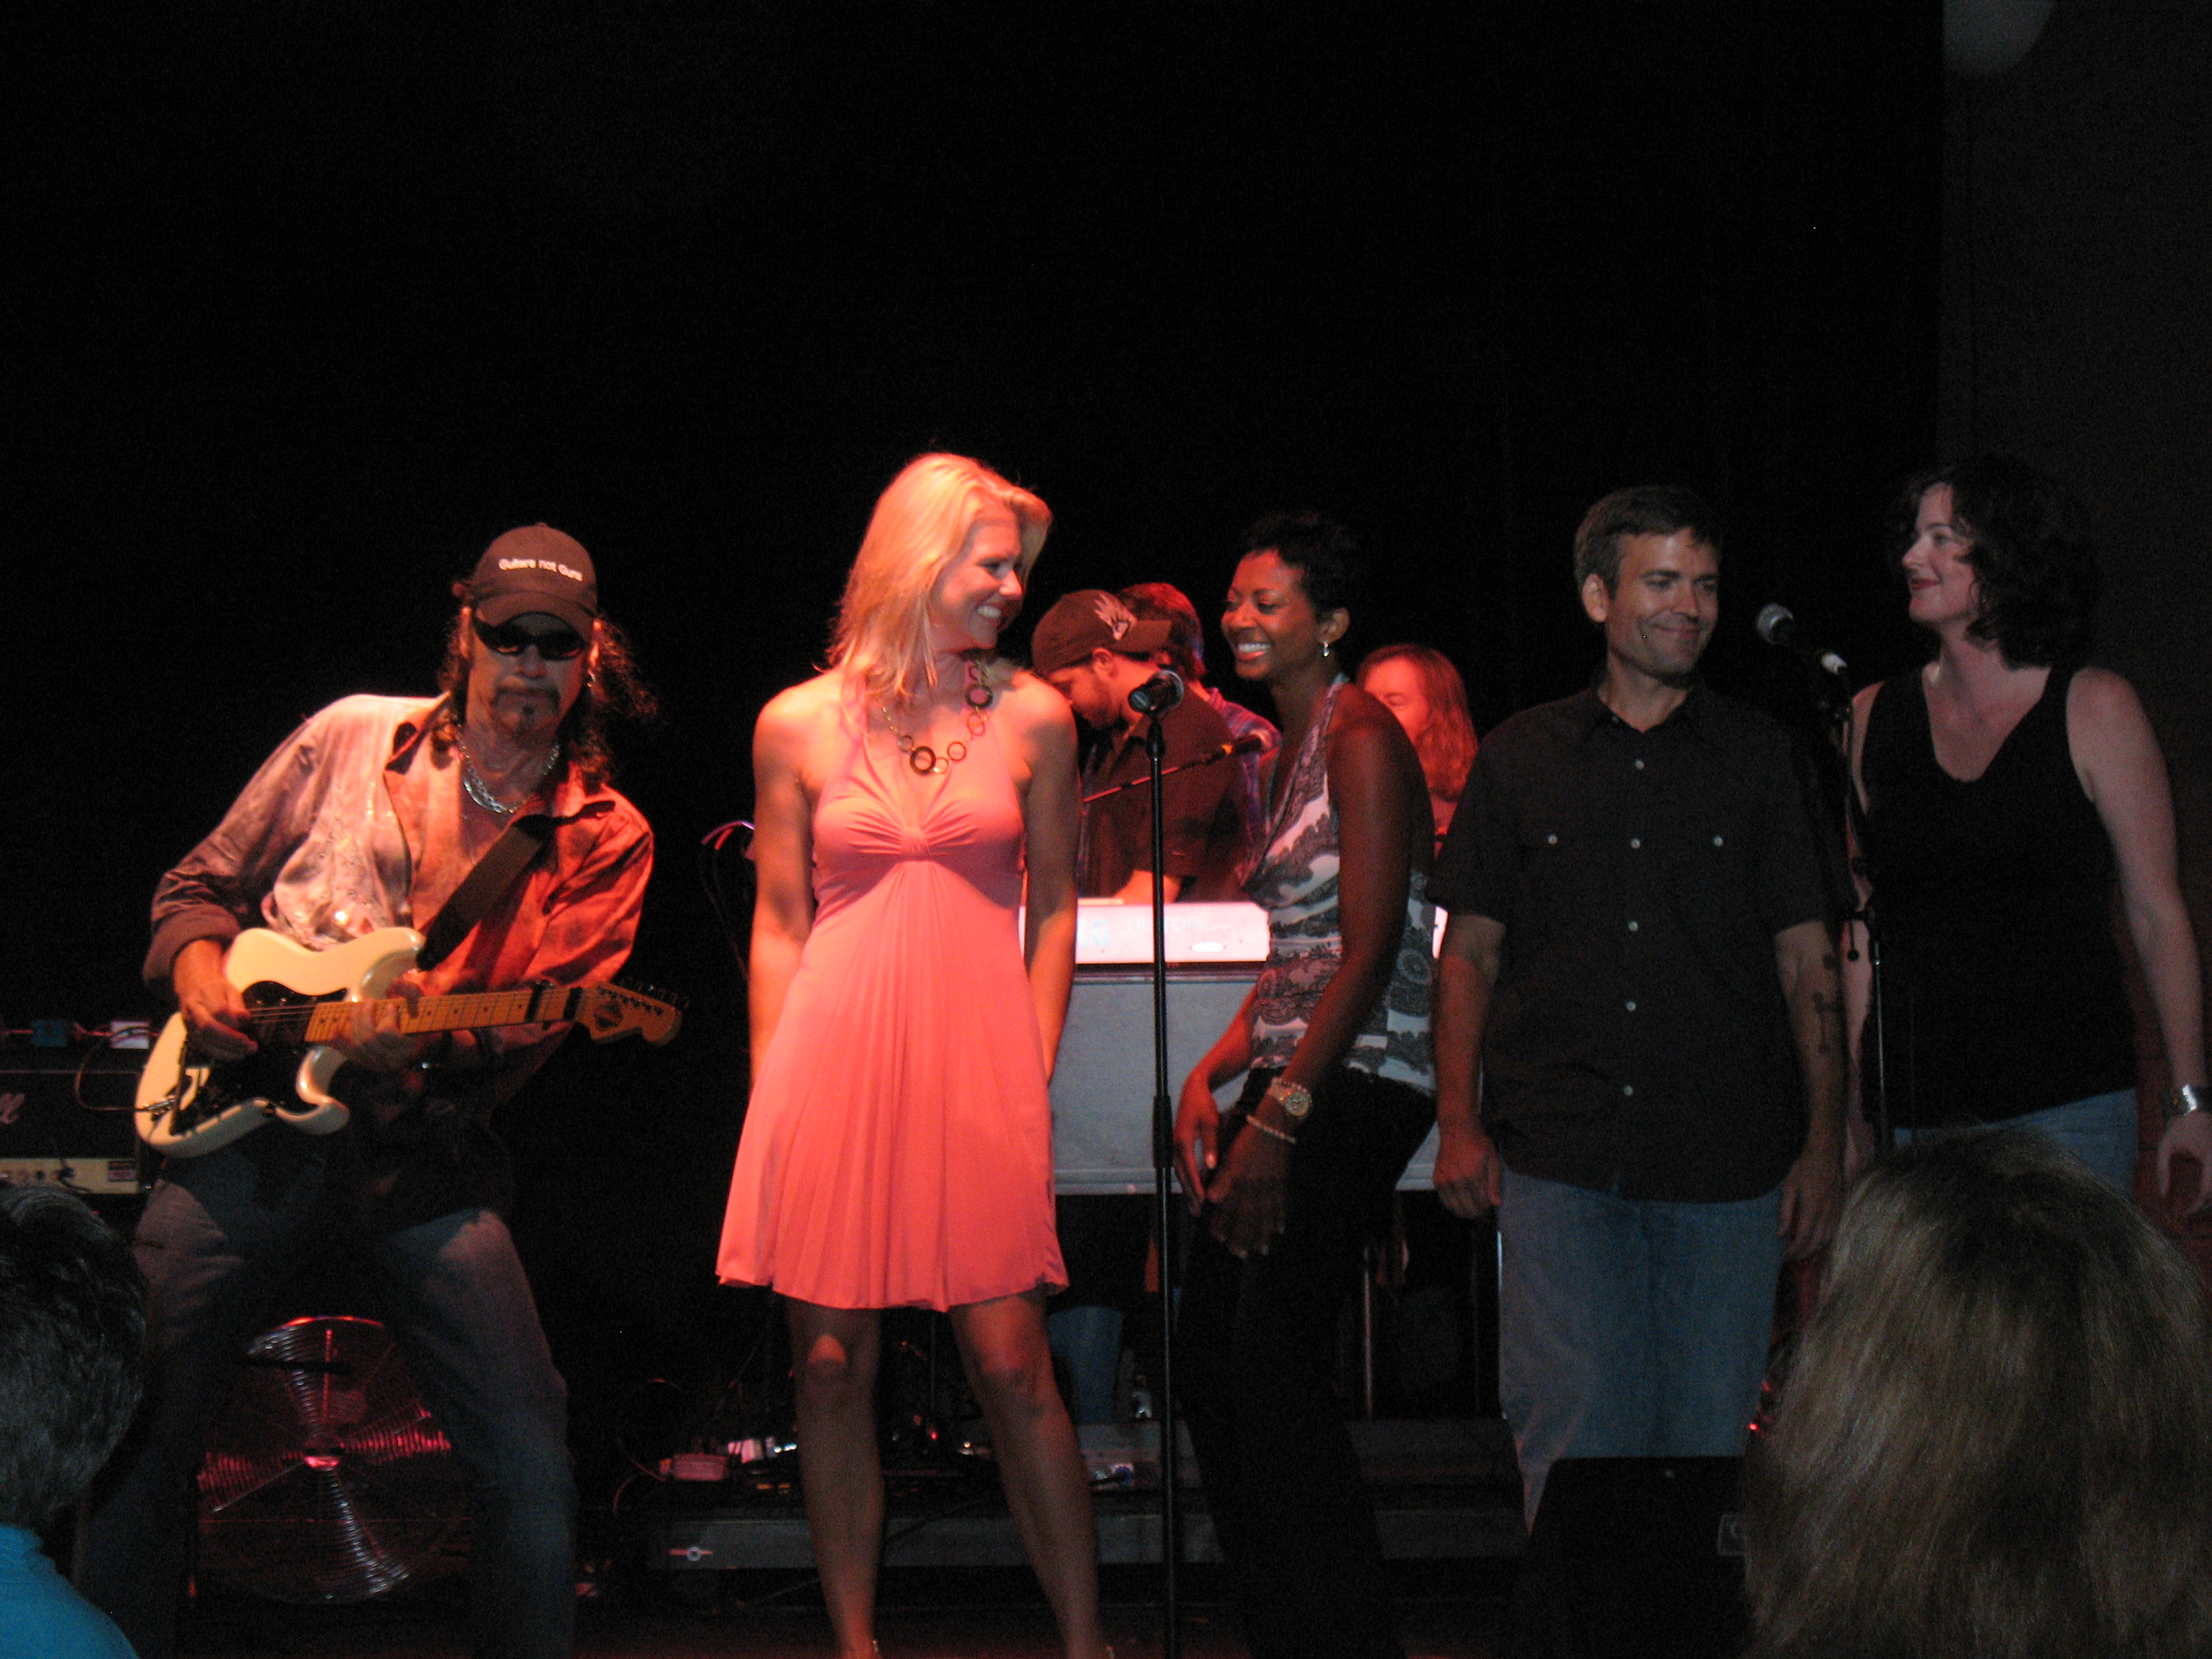 Corinna on stage with the World Classic Rockers